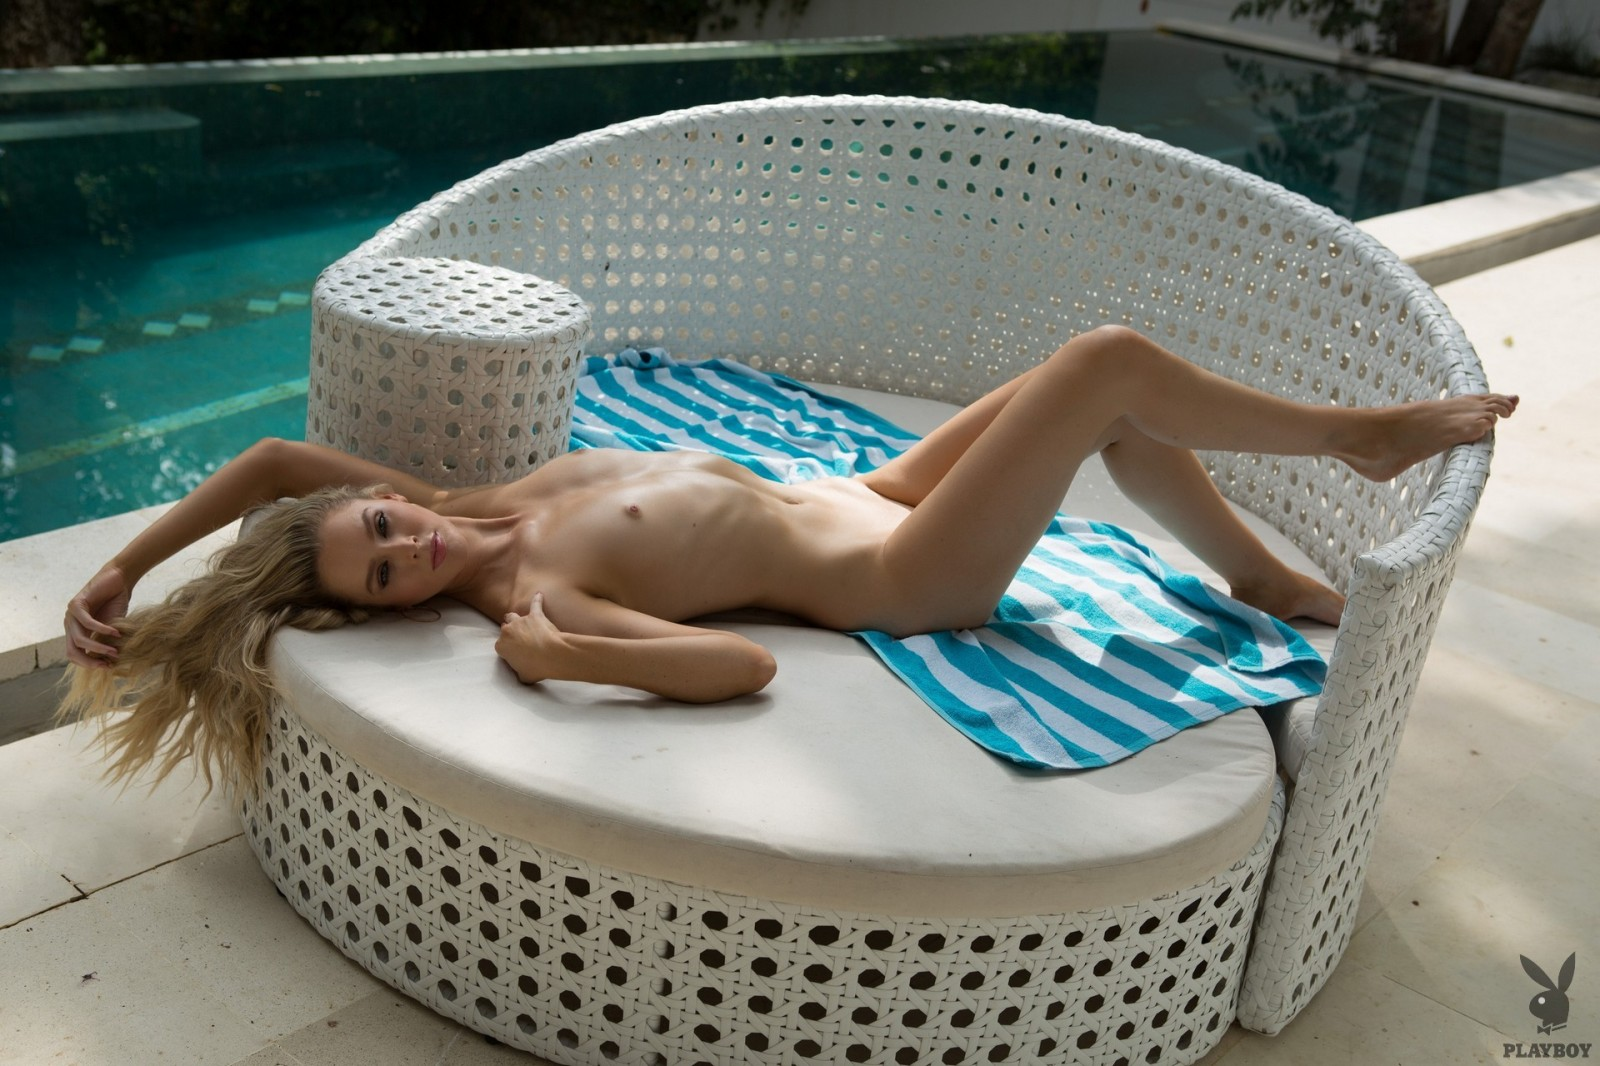 Blonde bombshell Thera Jane gets naked at the pool